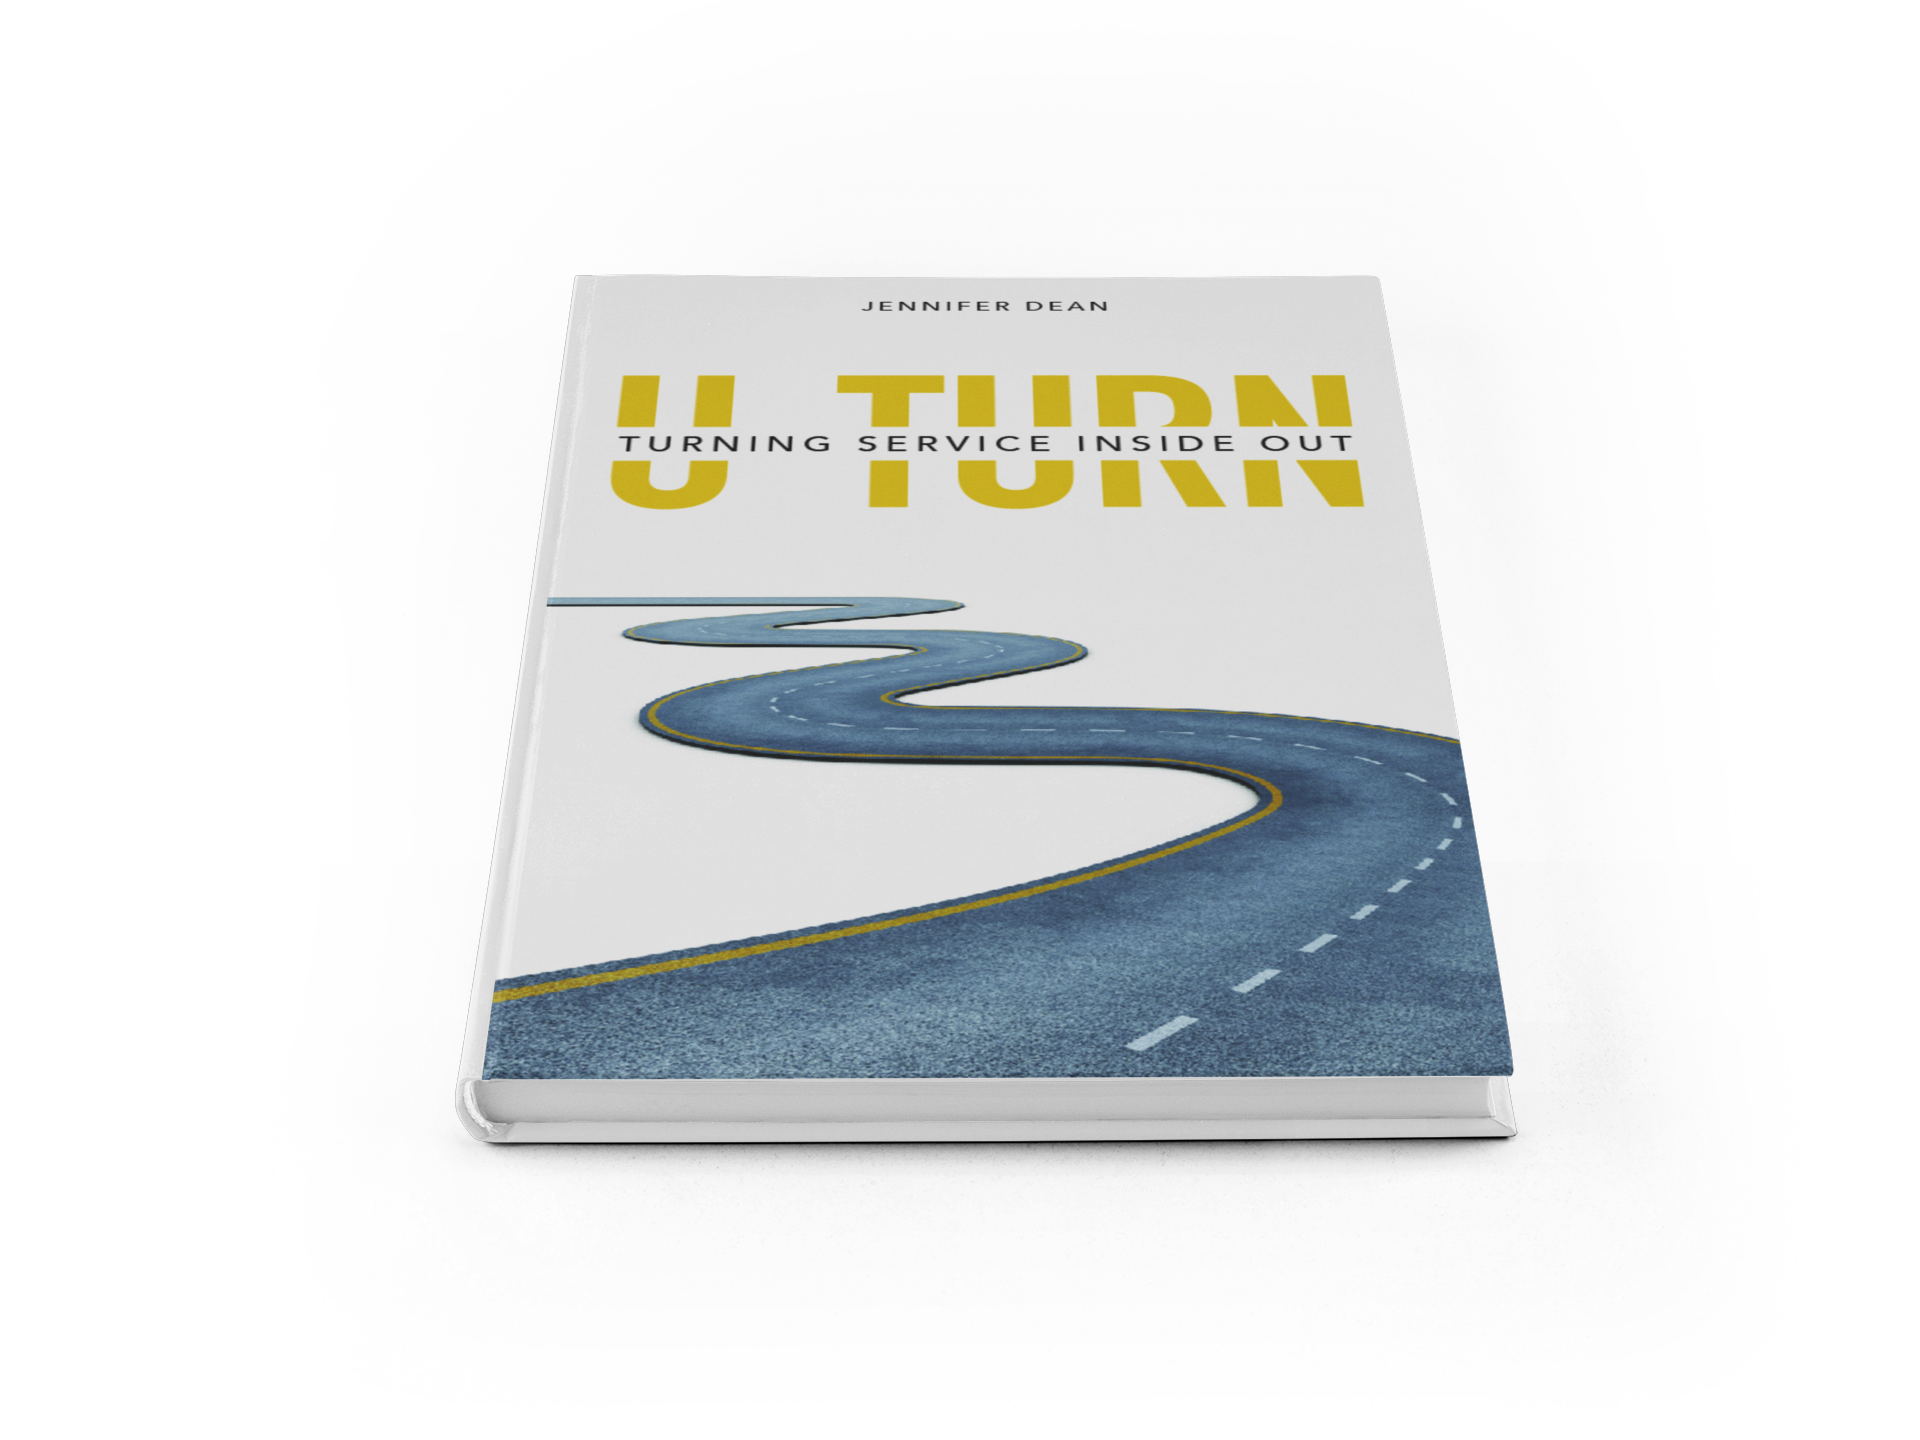 hardcover-book-png-mockup-on-a-surface-a11610.png